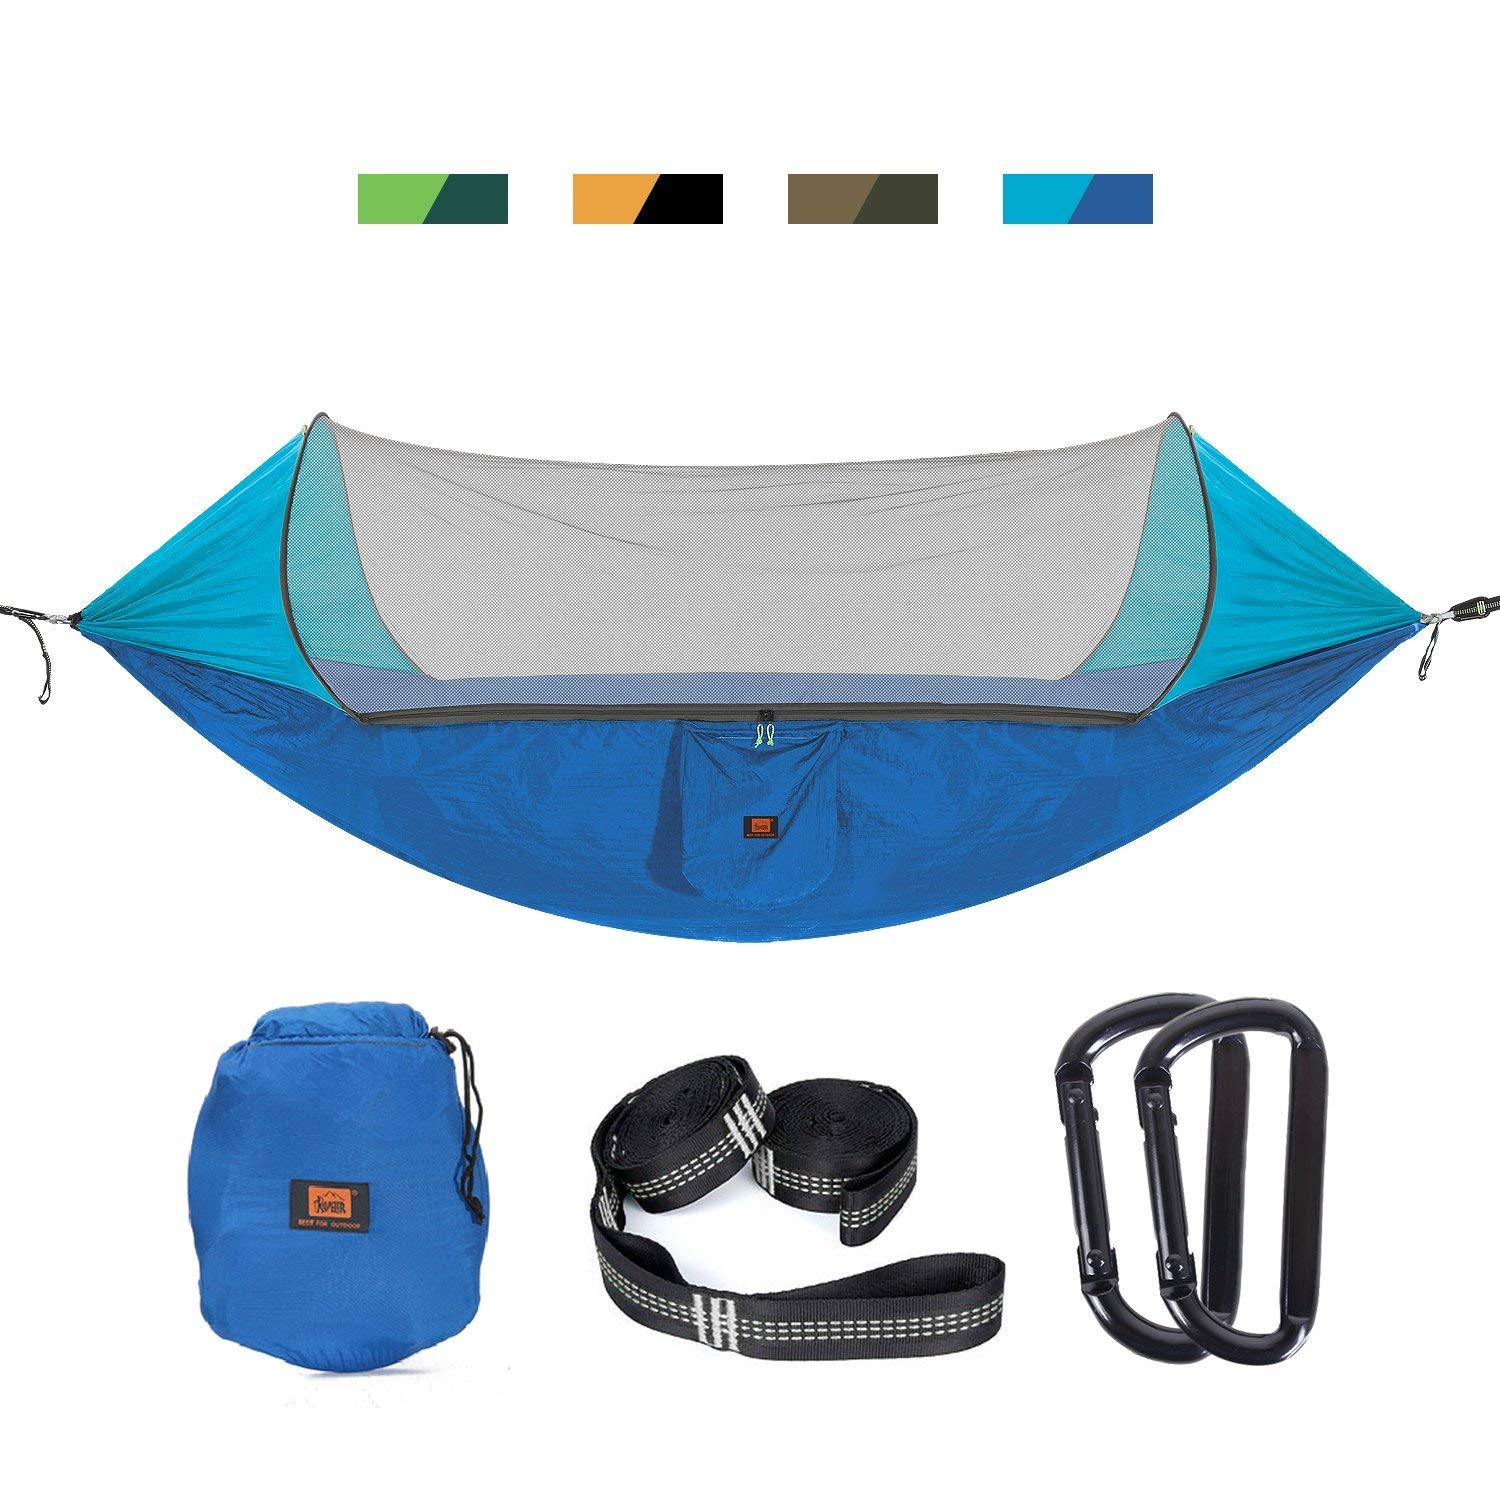 Top 10 Best Parachute Hammocks in 2019 - TopReviewProducts